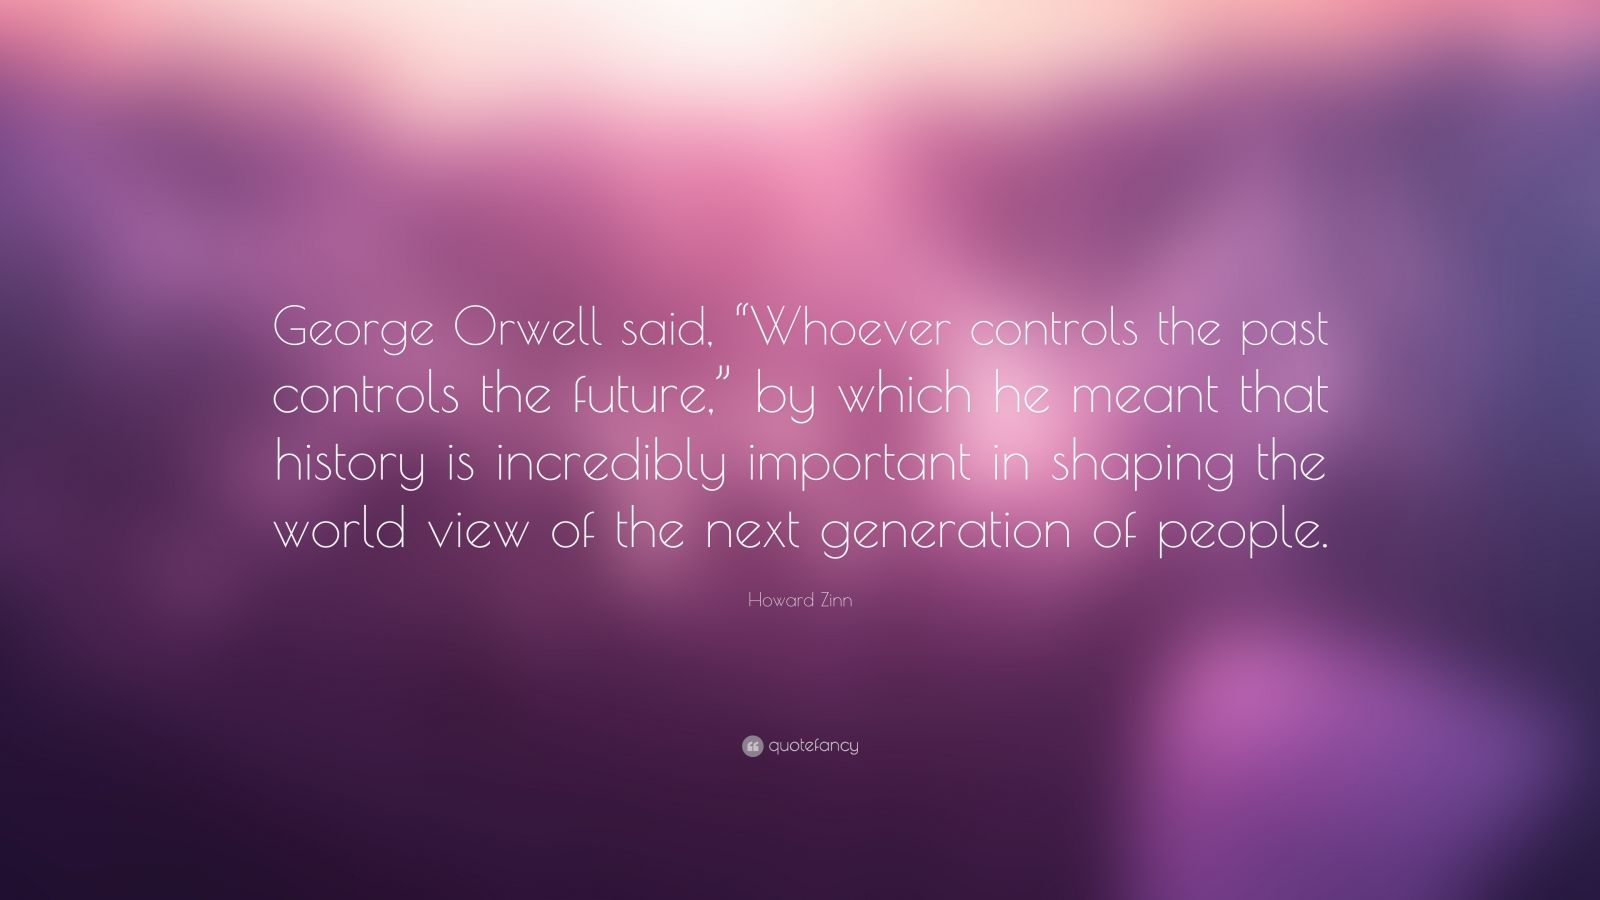 """Howard Zinn Quote: """"George Orwell said, """"Whoever controls the past controls the future,"""" by which he meant that history is incredibly important in shaping the world view of the next generation of people."""""""